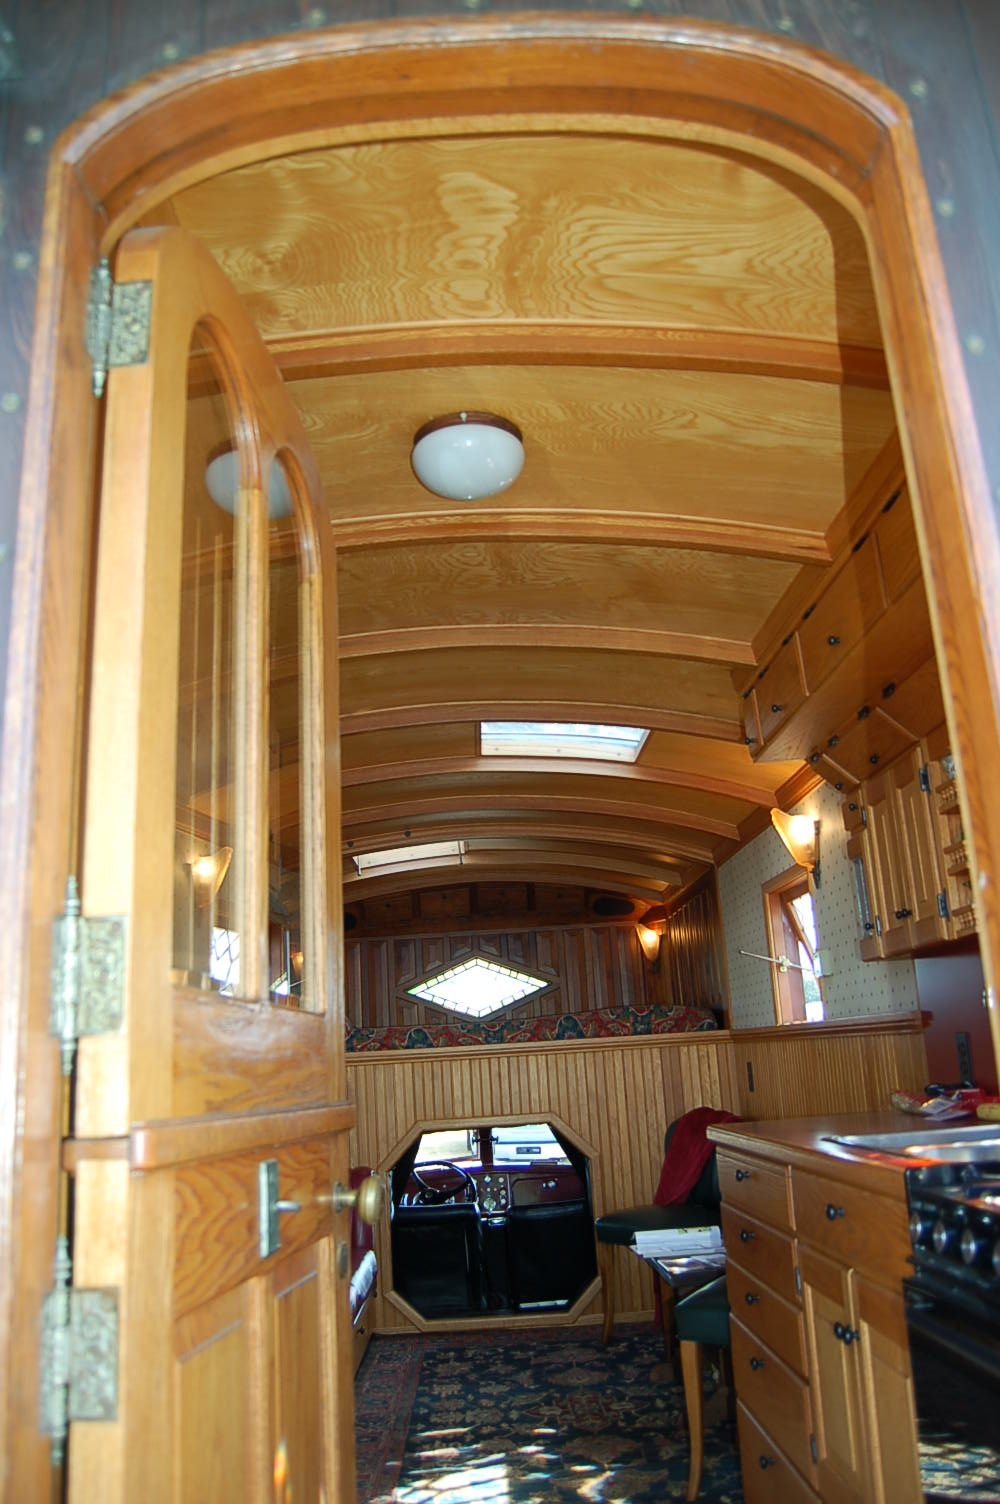 1959 Federal Truck with a custom trailer camper has beautifully designed  and crafted interior cabinets and. Vintage Truck Based Camper Trailers  from OldTrailer com